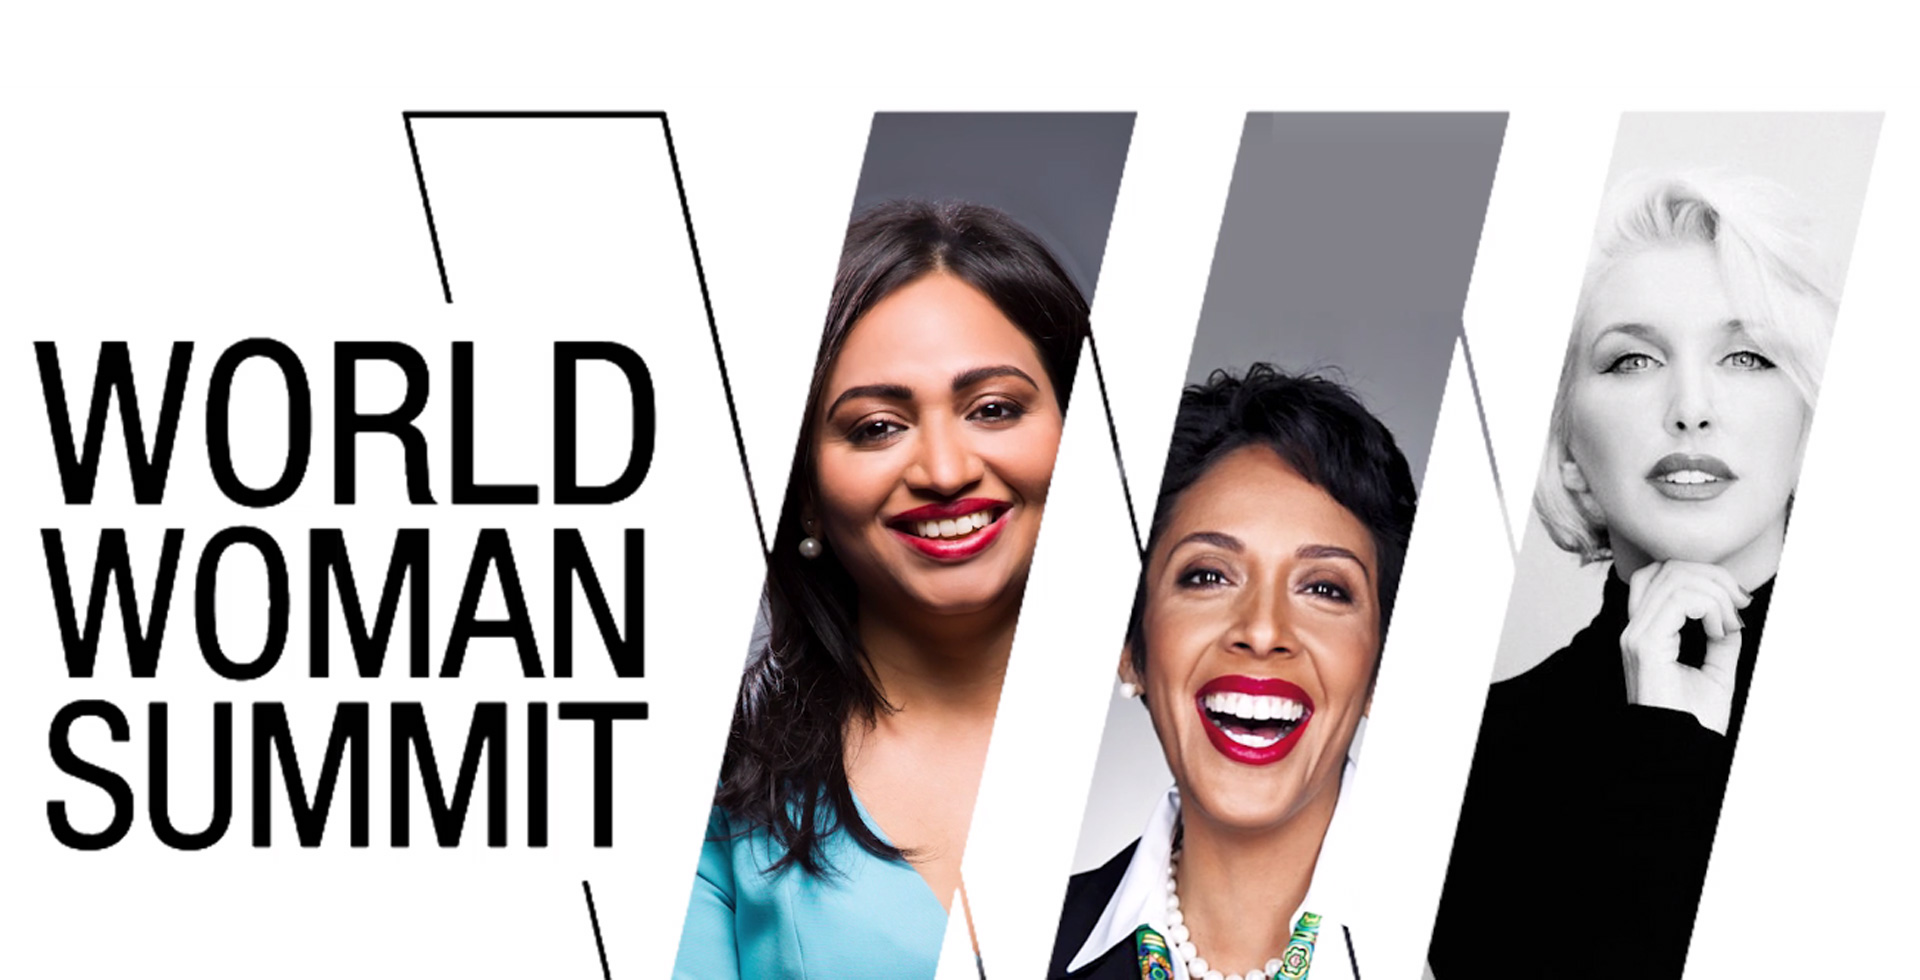 World Woman SUMMIT